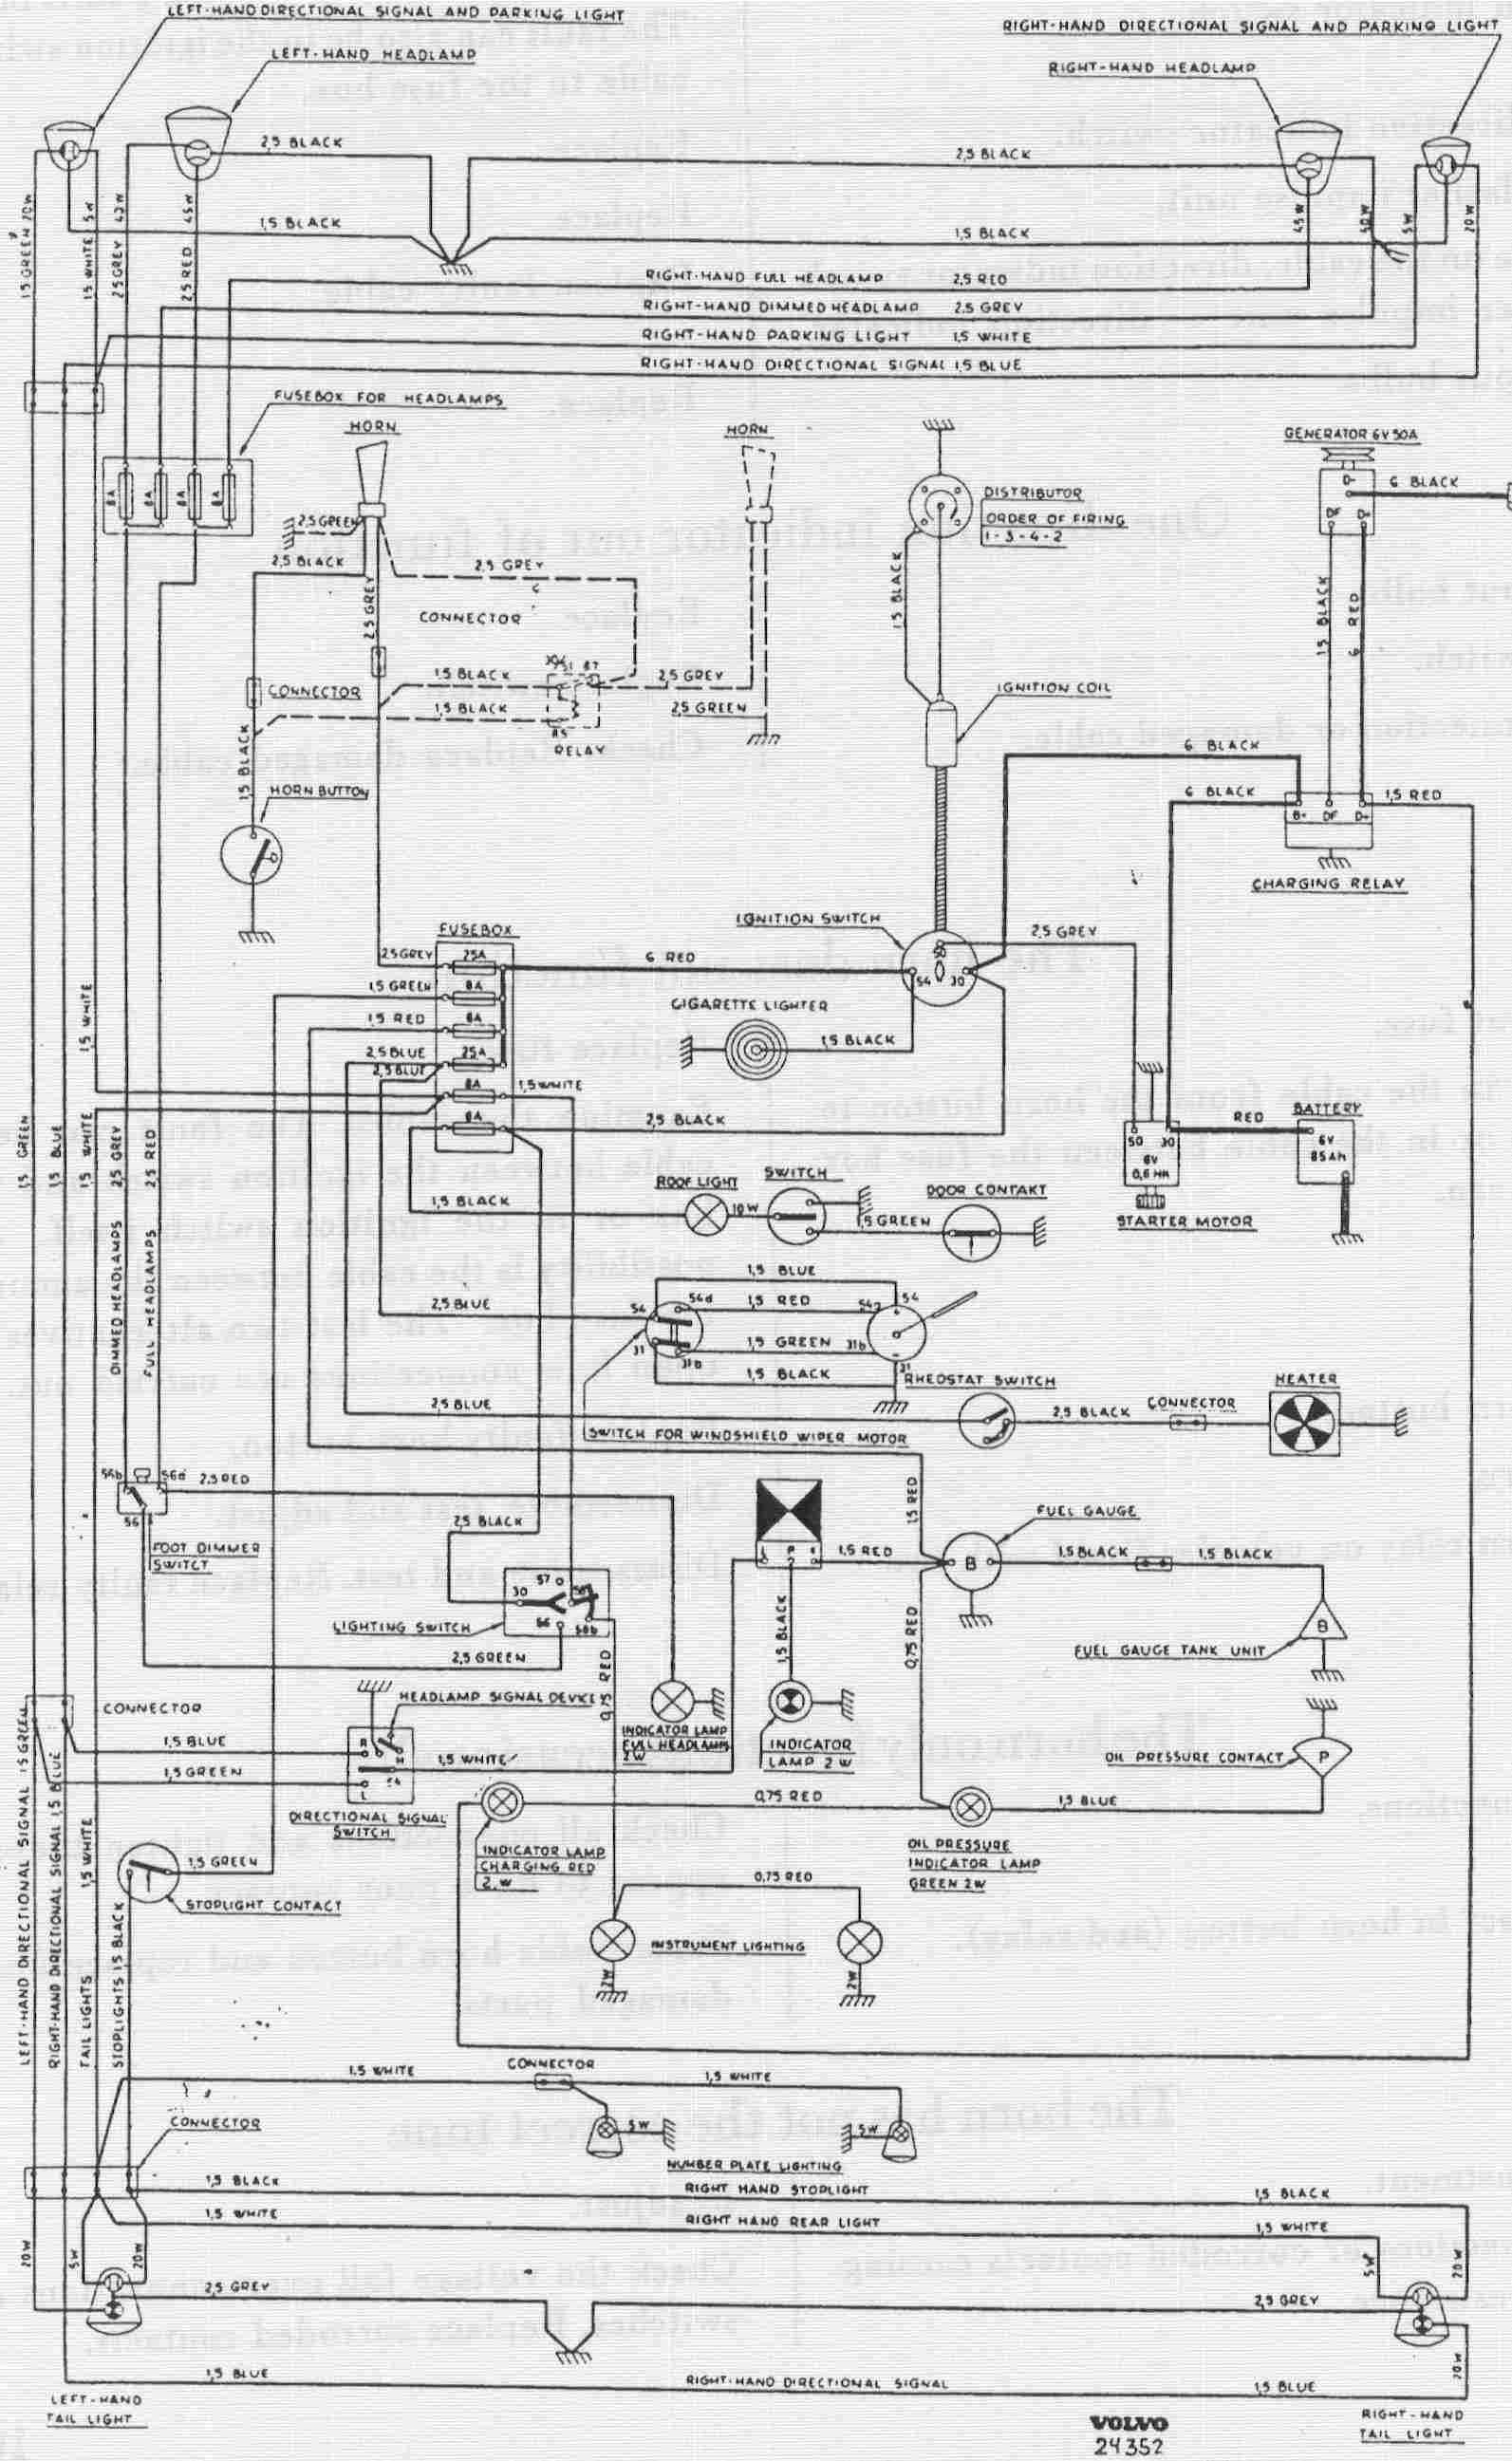 volvo 240 wiring diagram on 960 volvo 240 wiring diagram